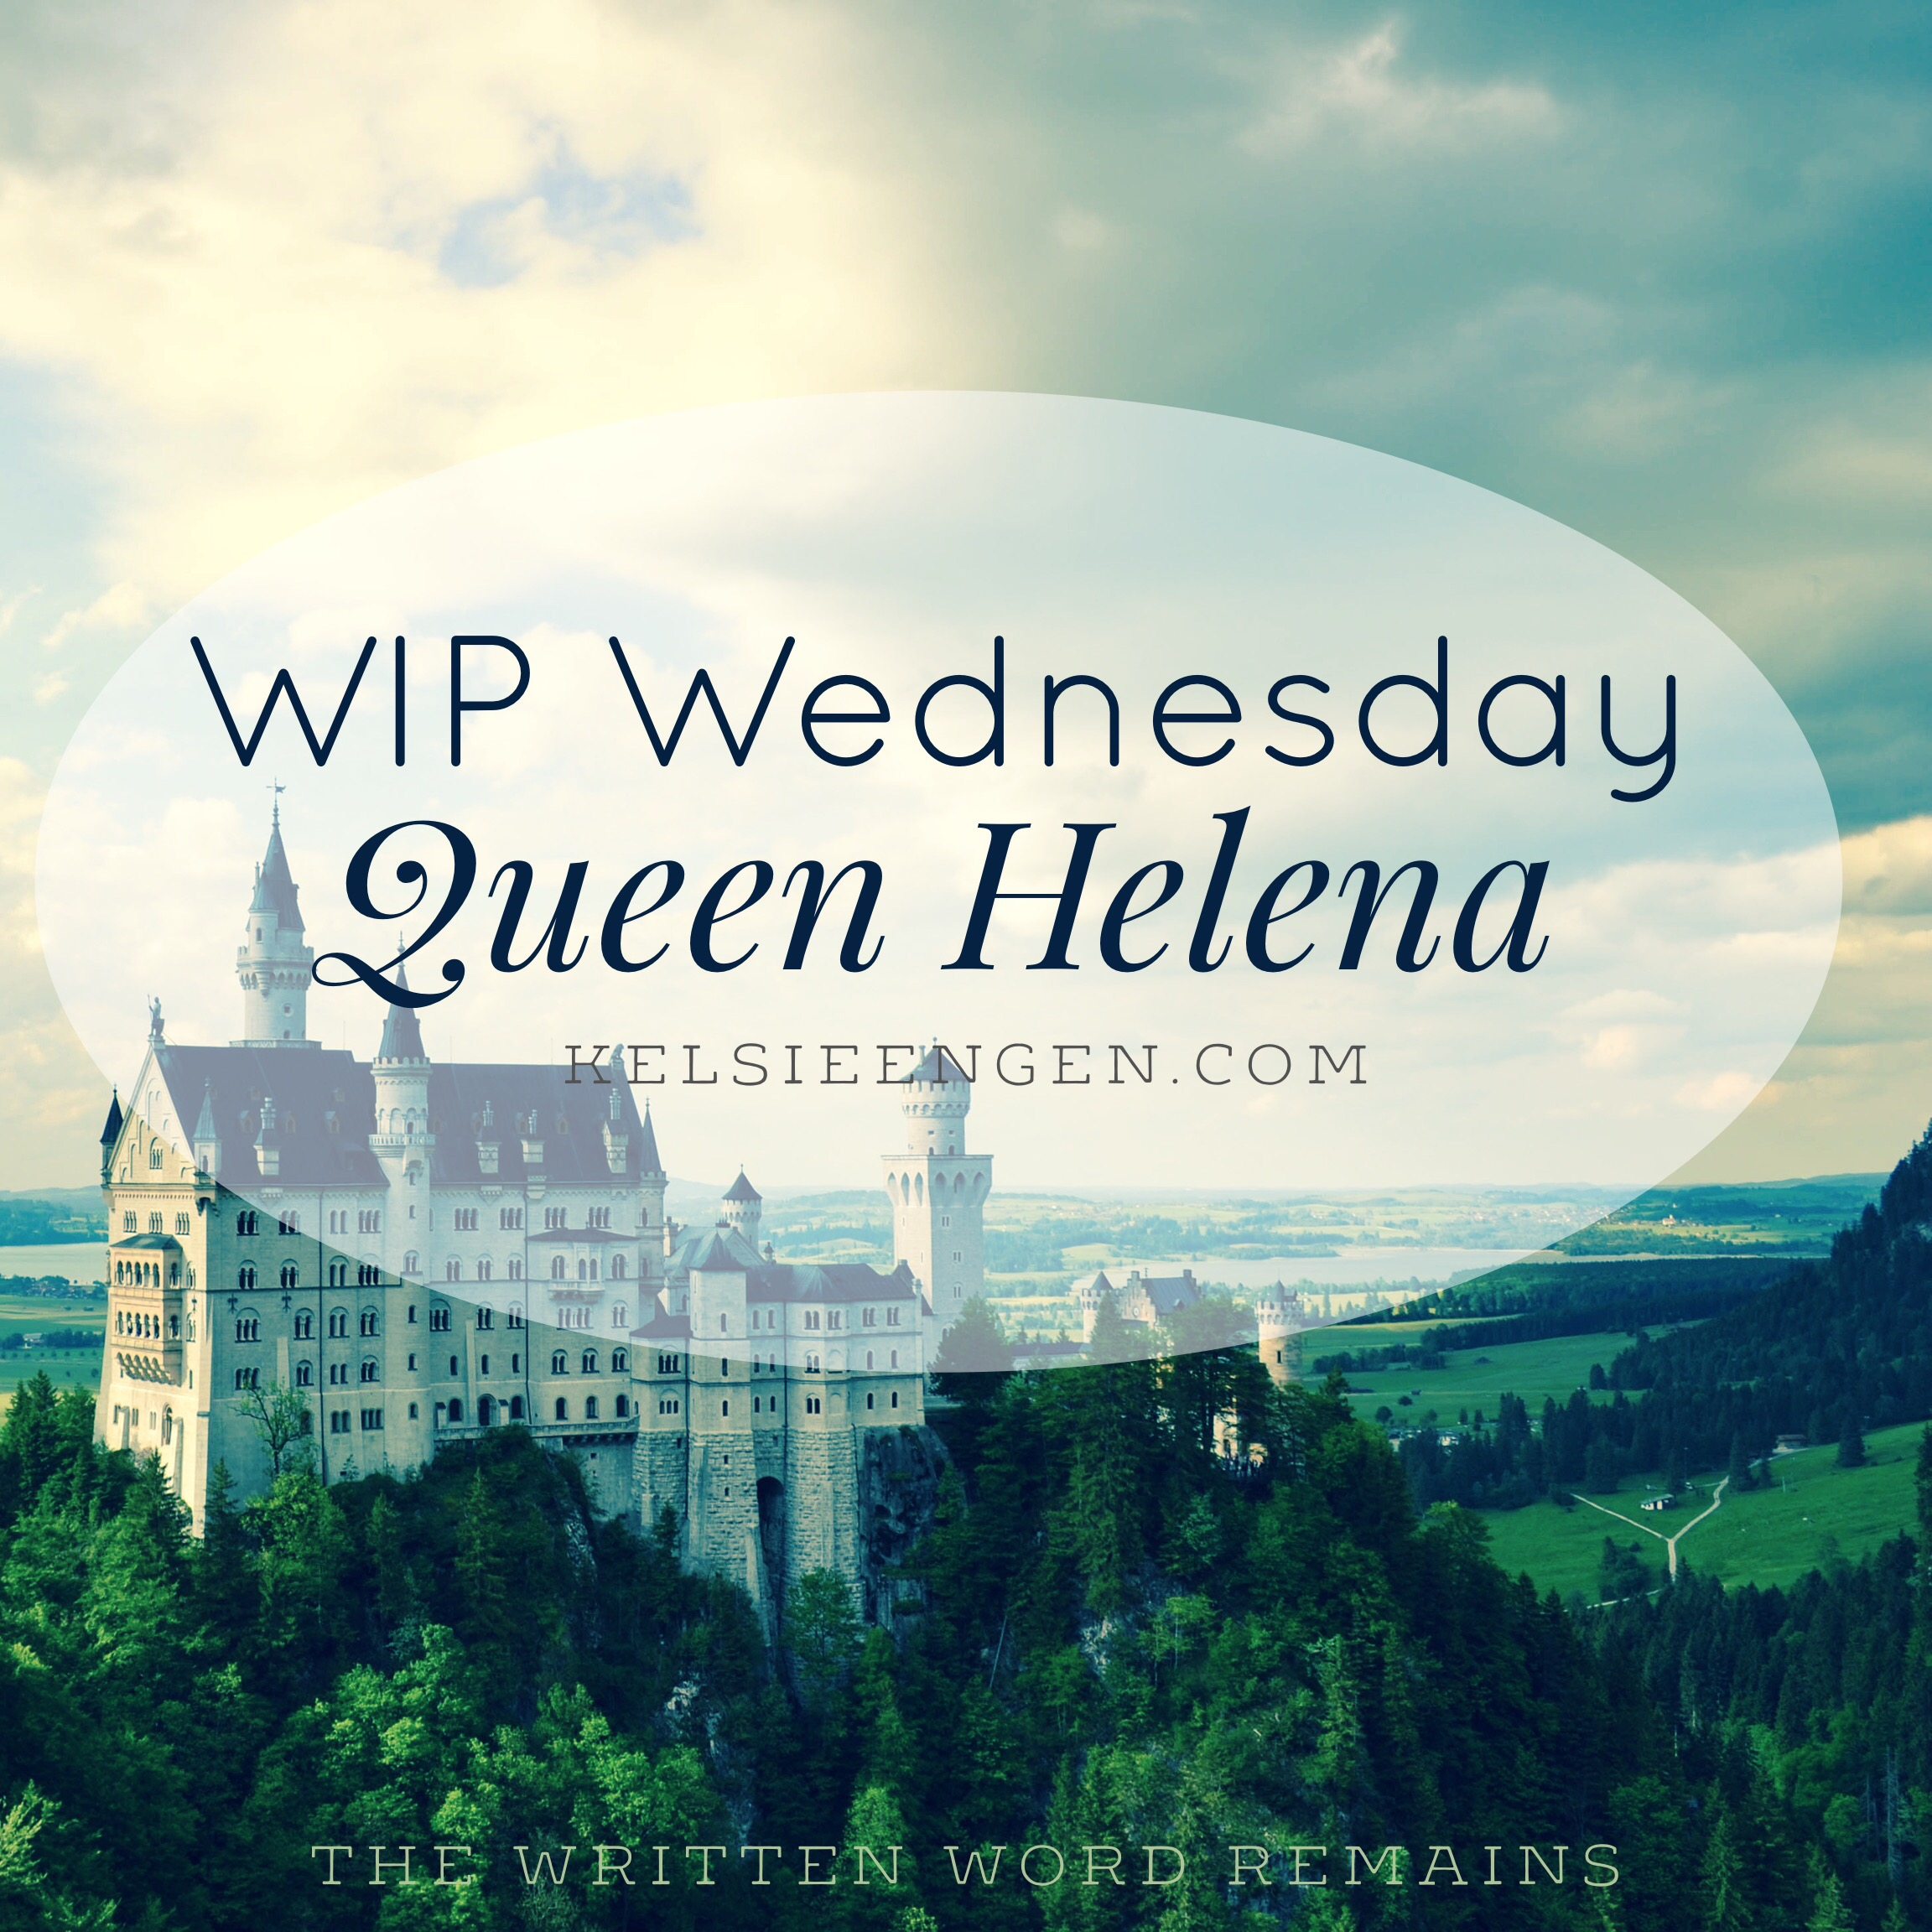 WIP Wednesday: Queen Helena